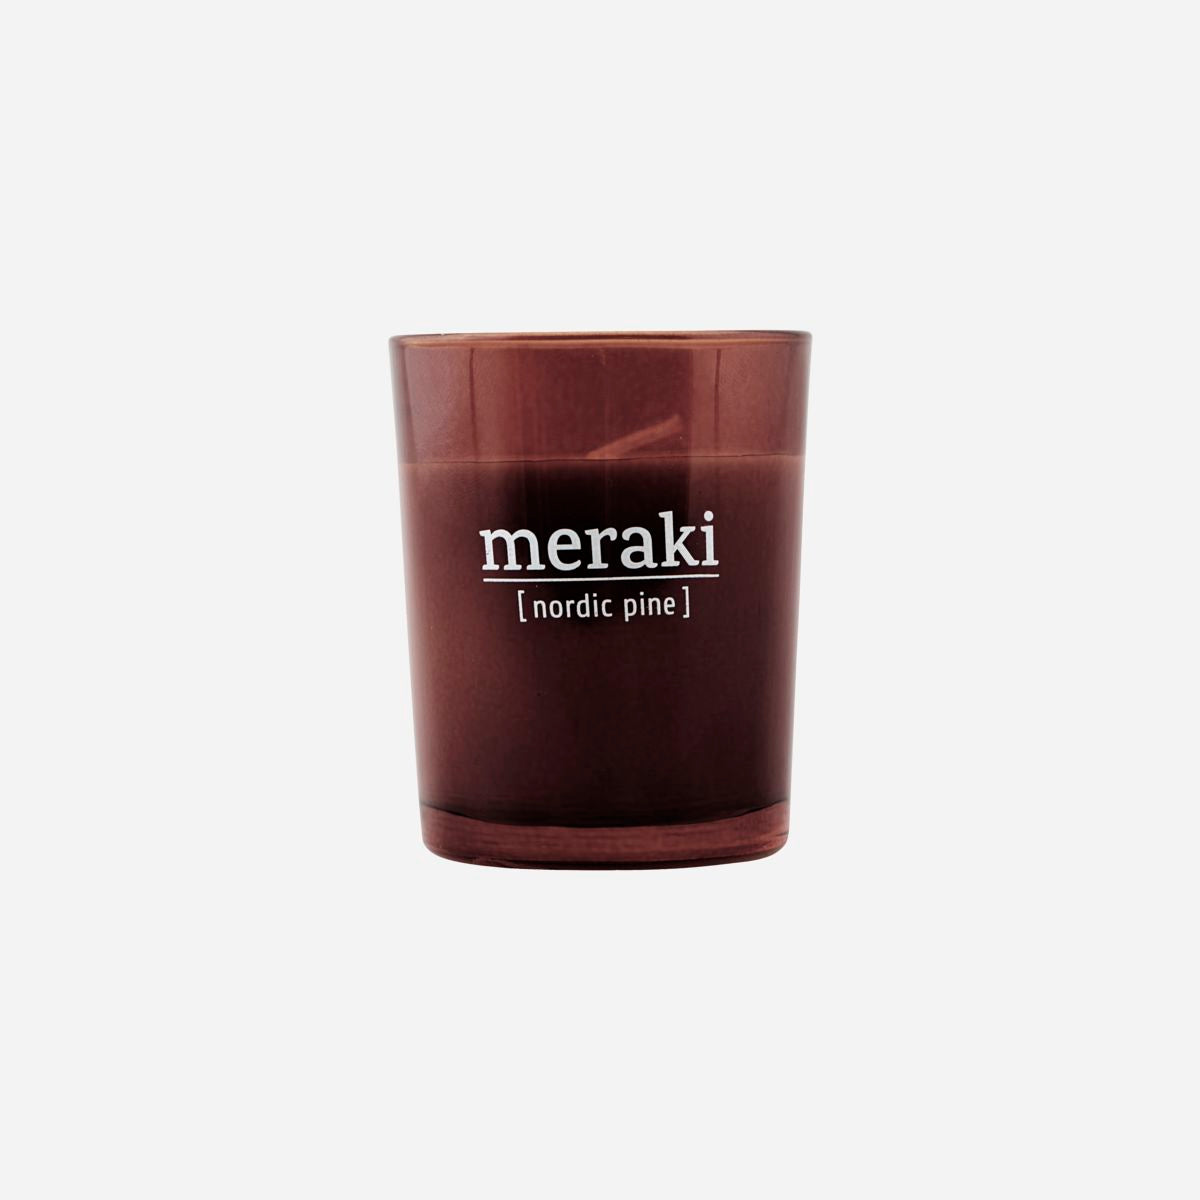 Meraki Candle in Nordic Pine - The Jute Basket